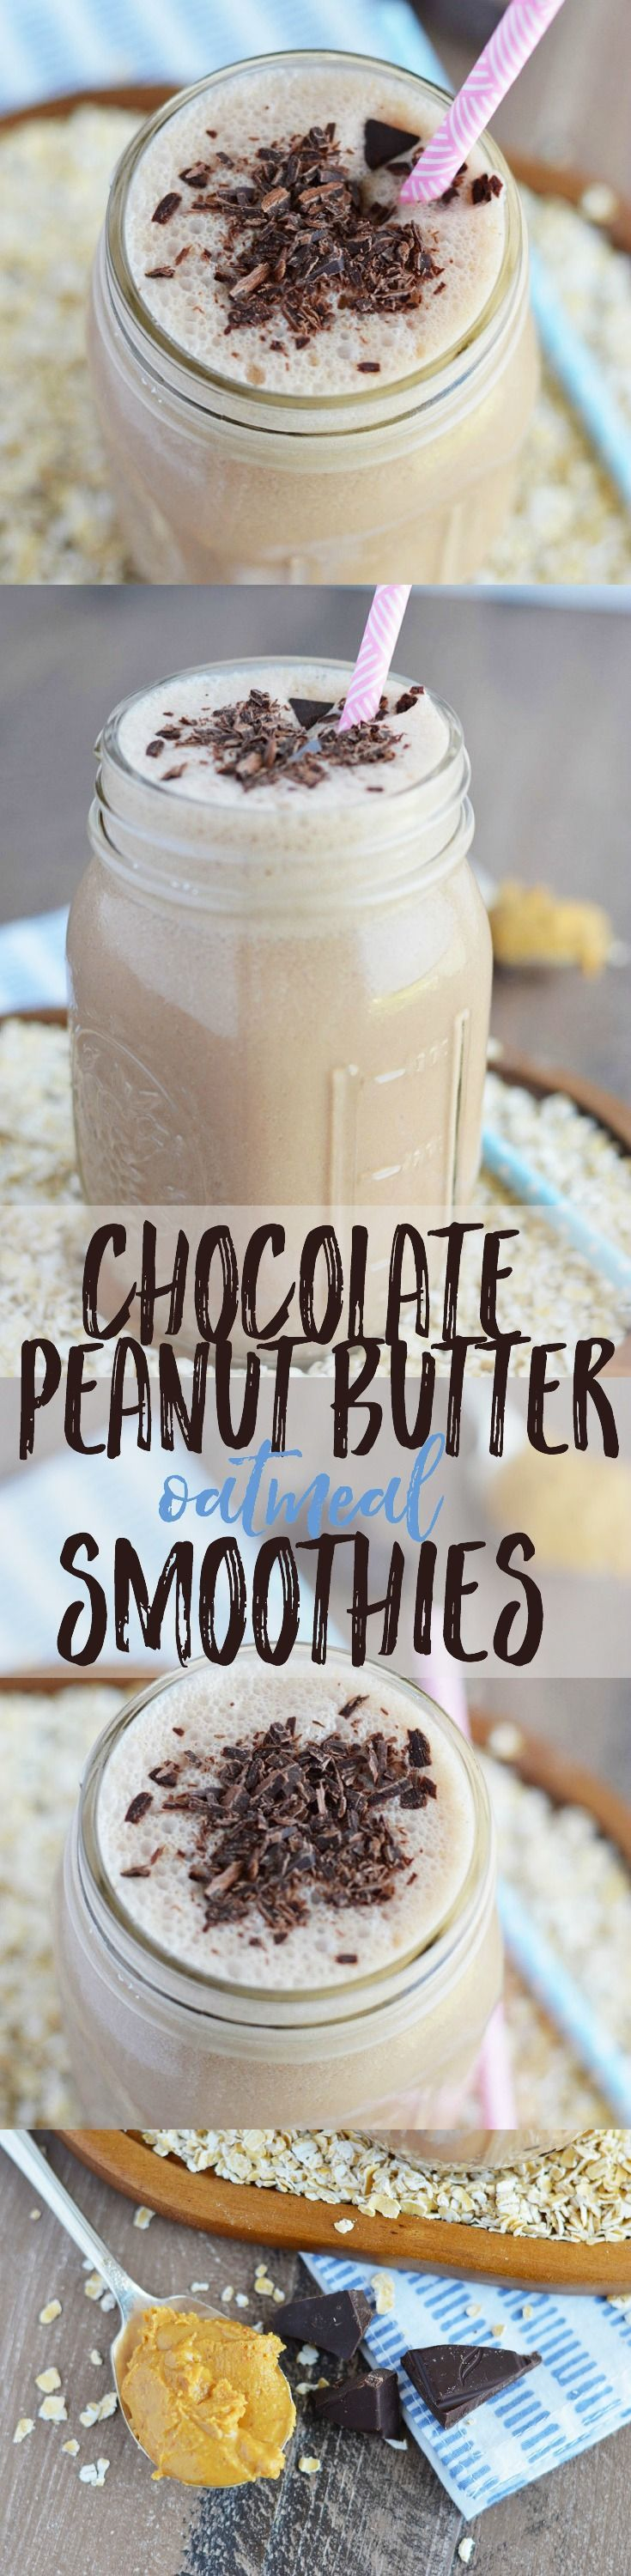 Chocolate Peanut Butter Oatmeal Smoothies from What The Fork Food Blog. These smoothies are healthy, filling, and full of flavors you love - they make a great on-the-go breakfast! | whattheforkfoodblog.com